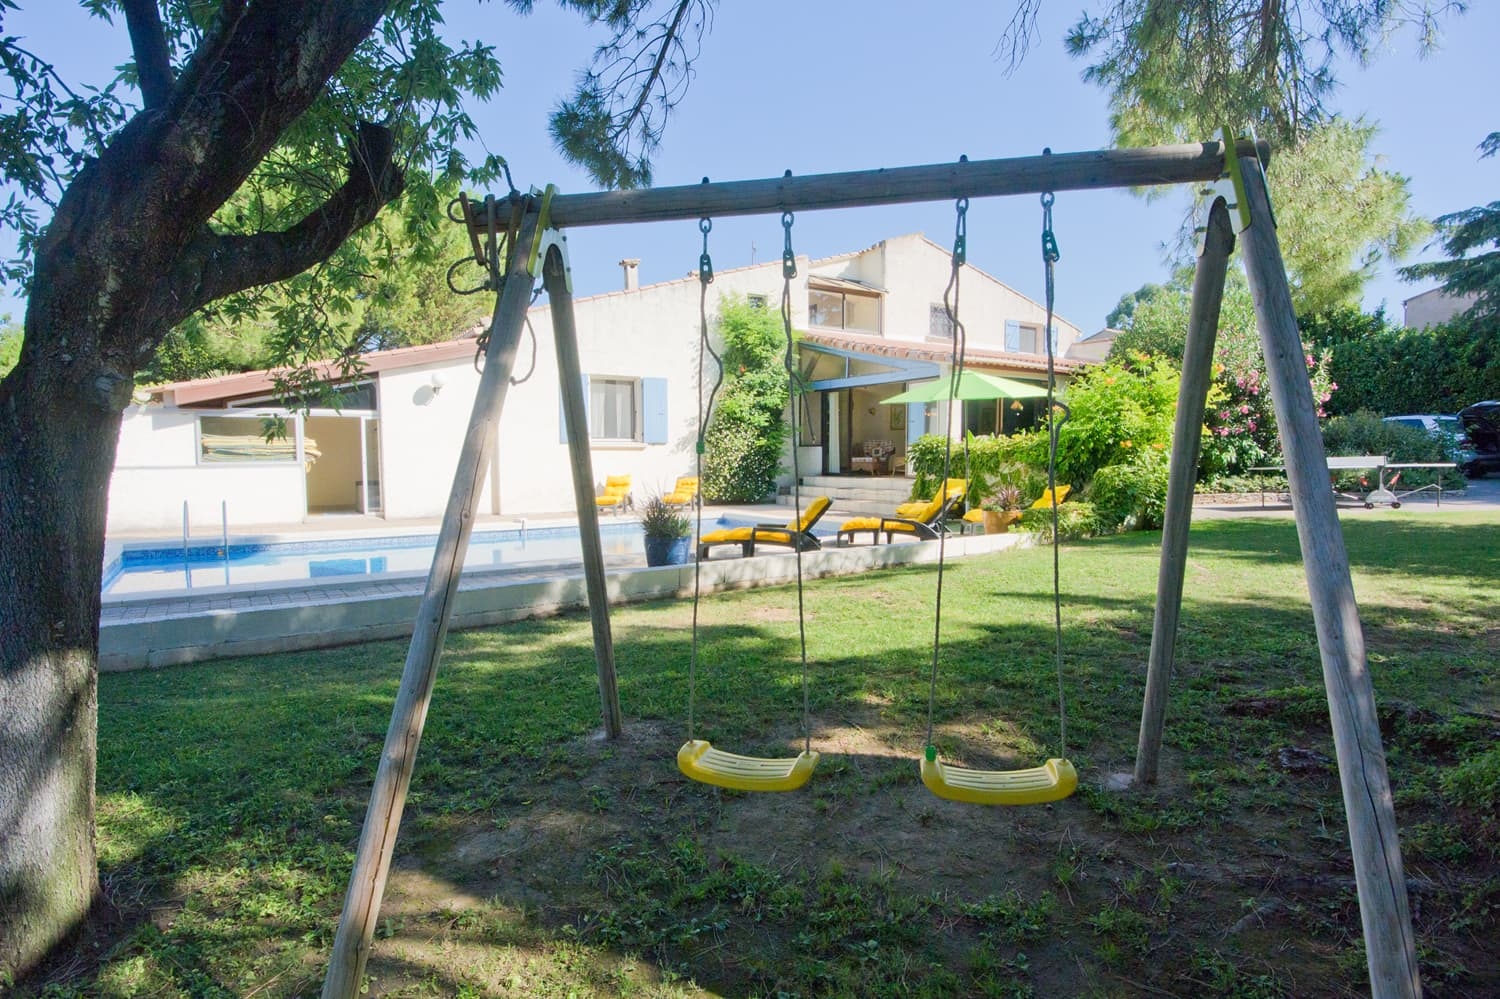 Swings in garden